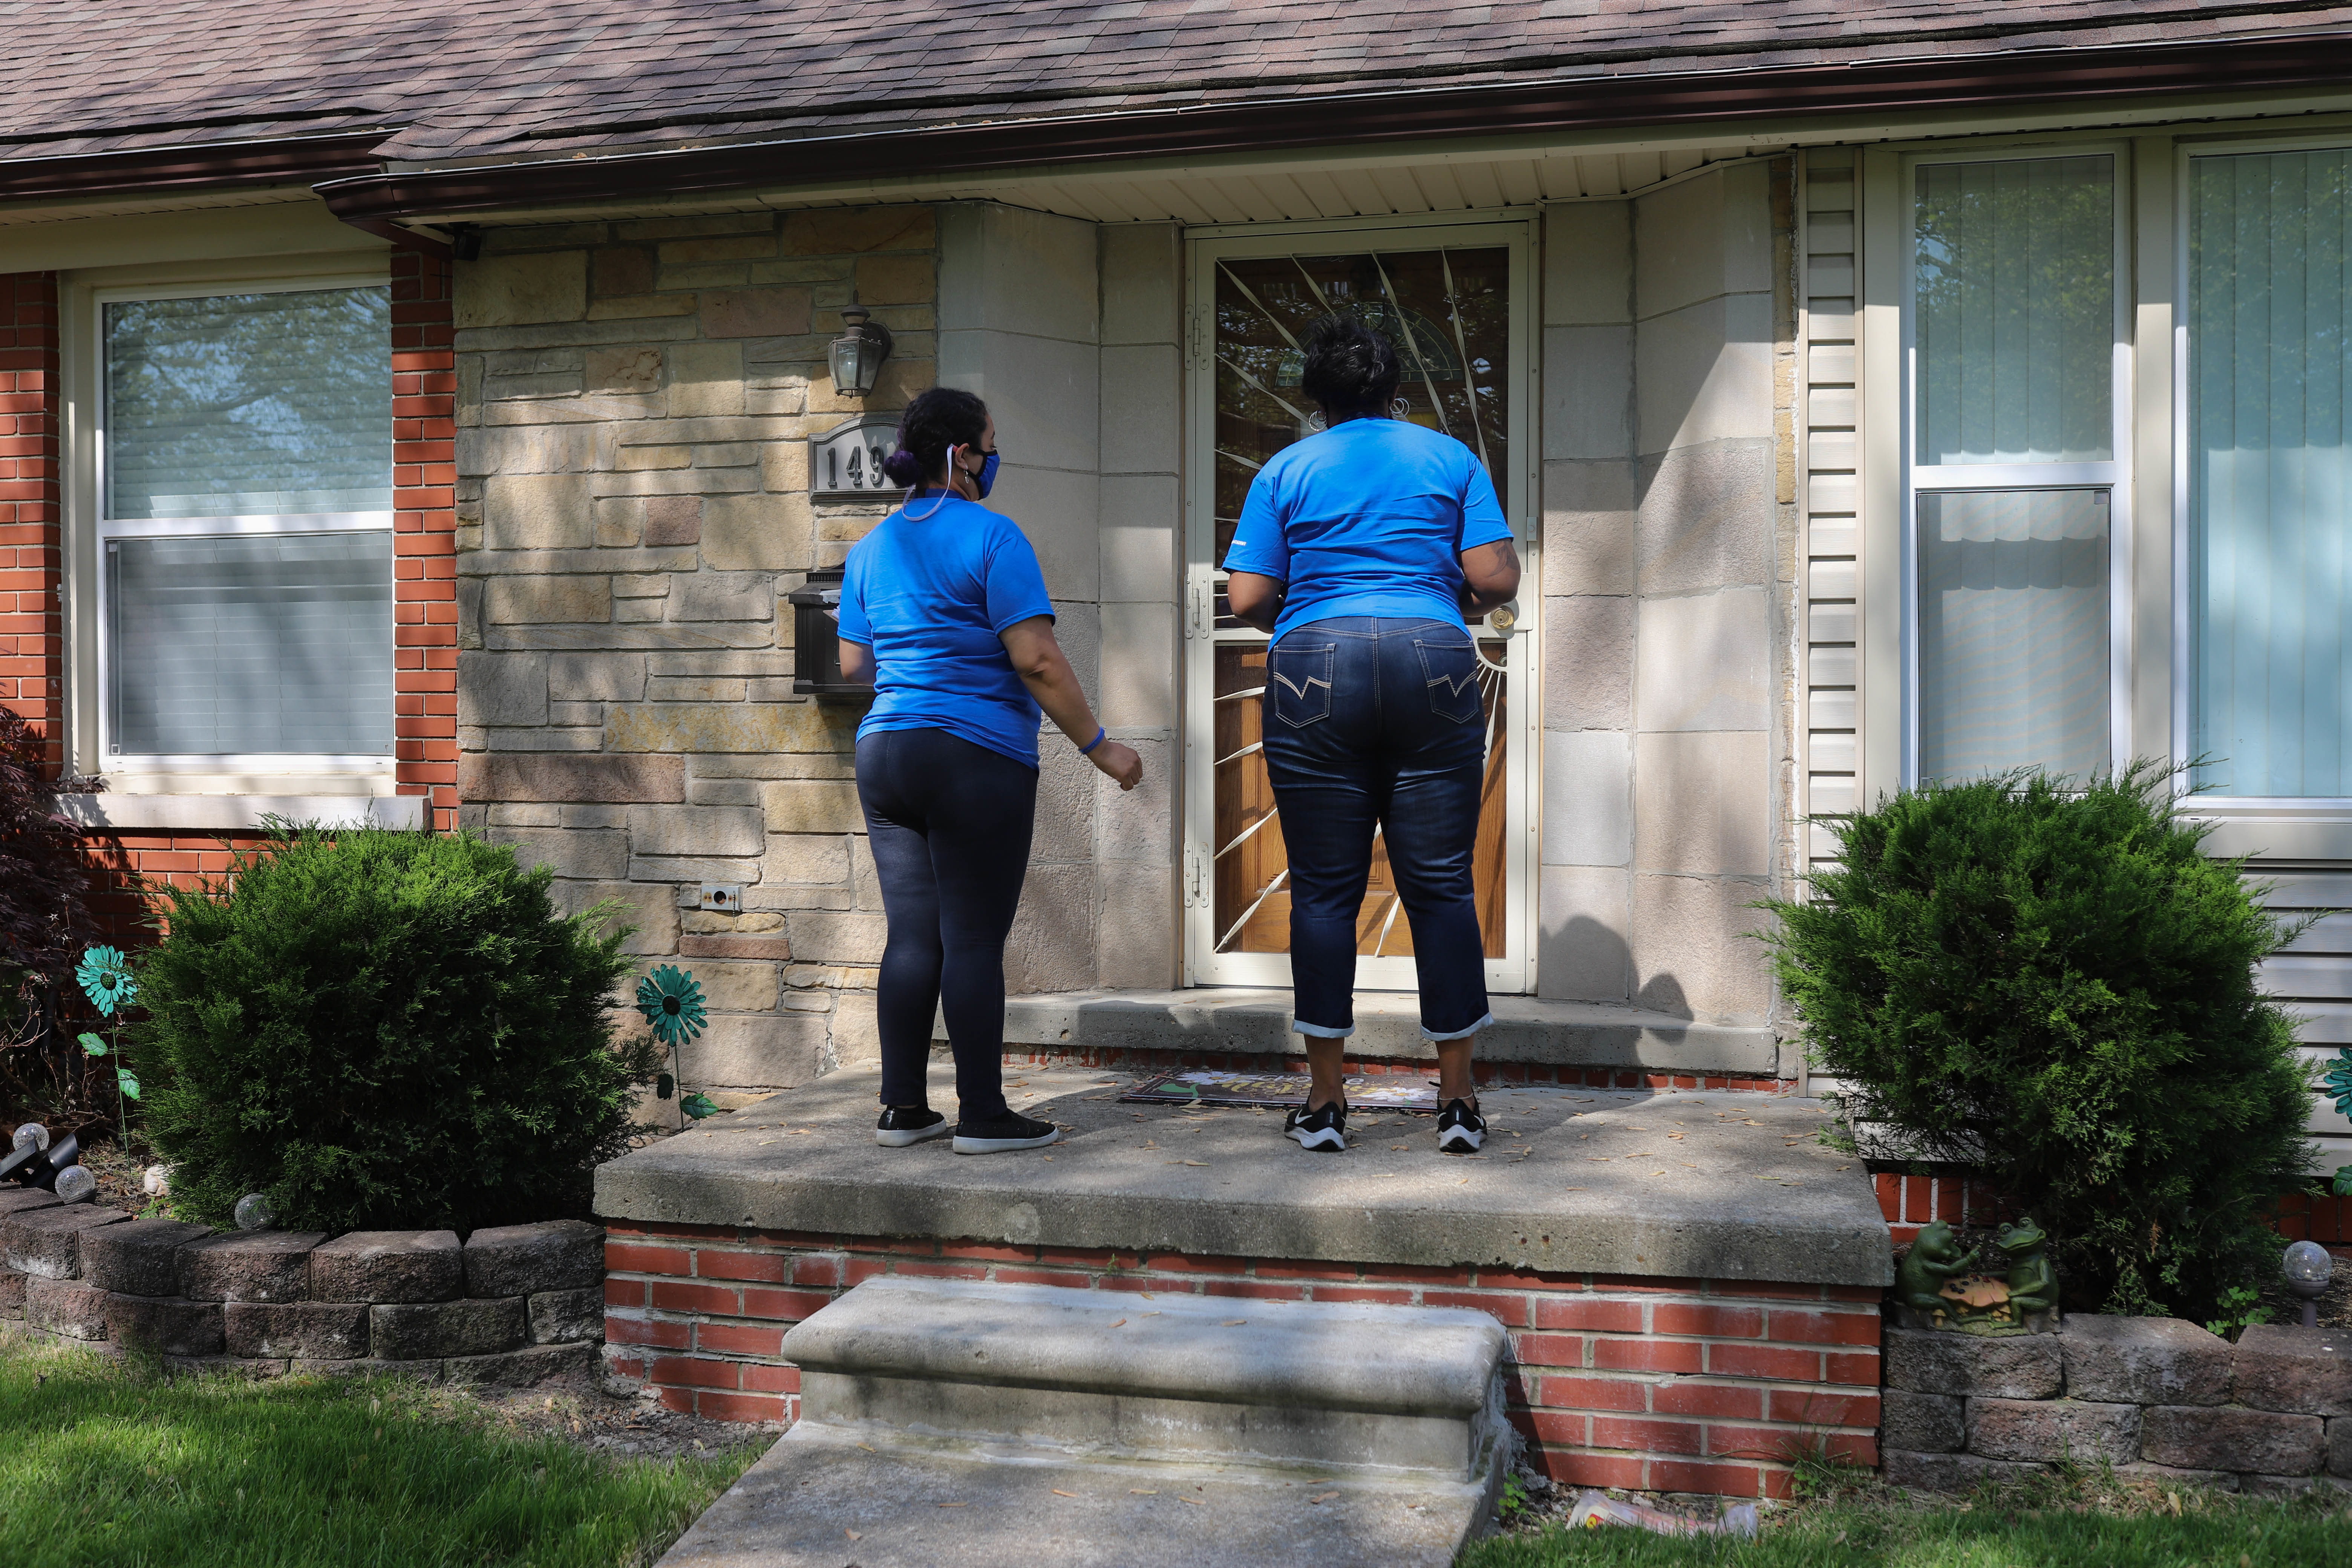 Two women, wearing blue shirts and jeans, stand at the front door of a house in Detroit, Mich. that is patterned from the sun and shadows.